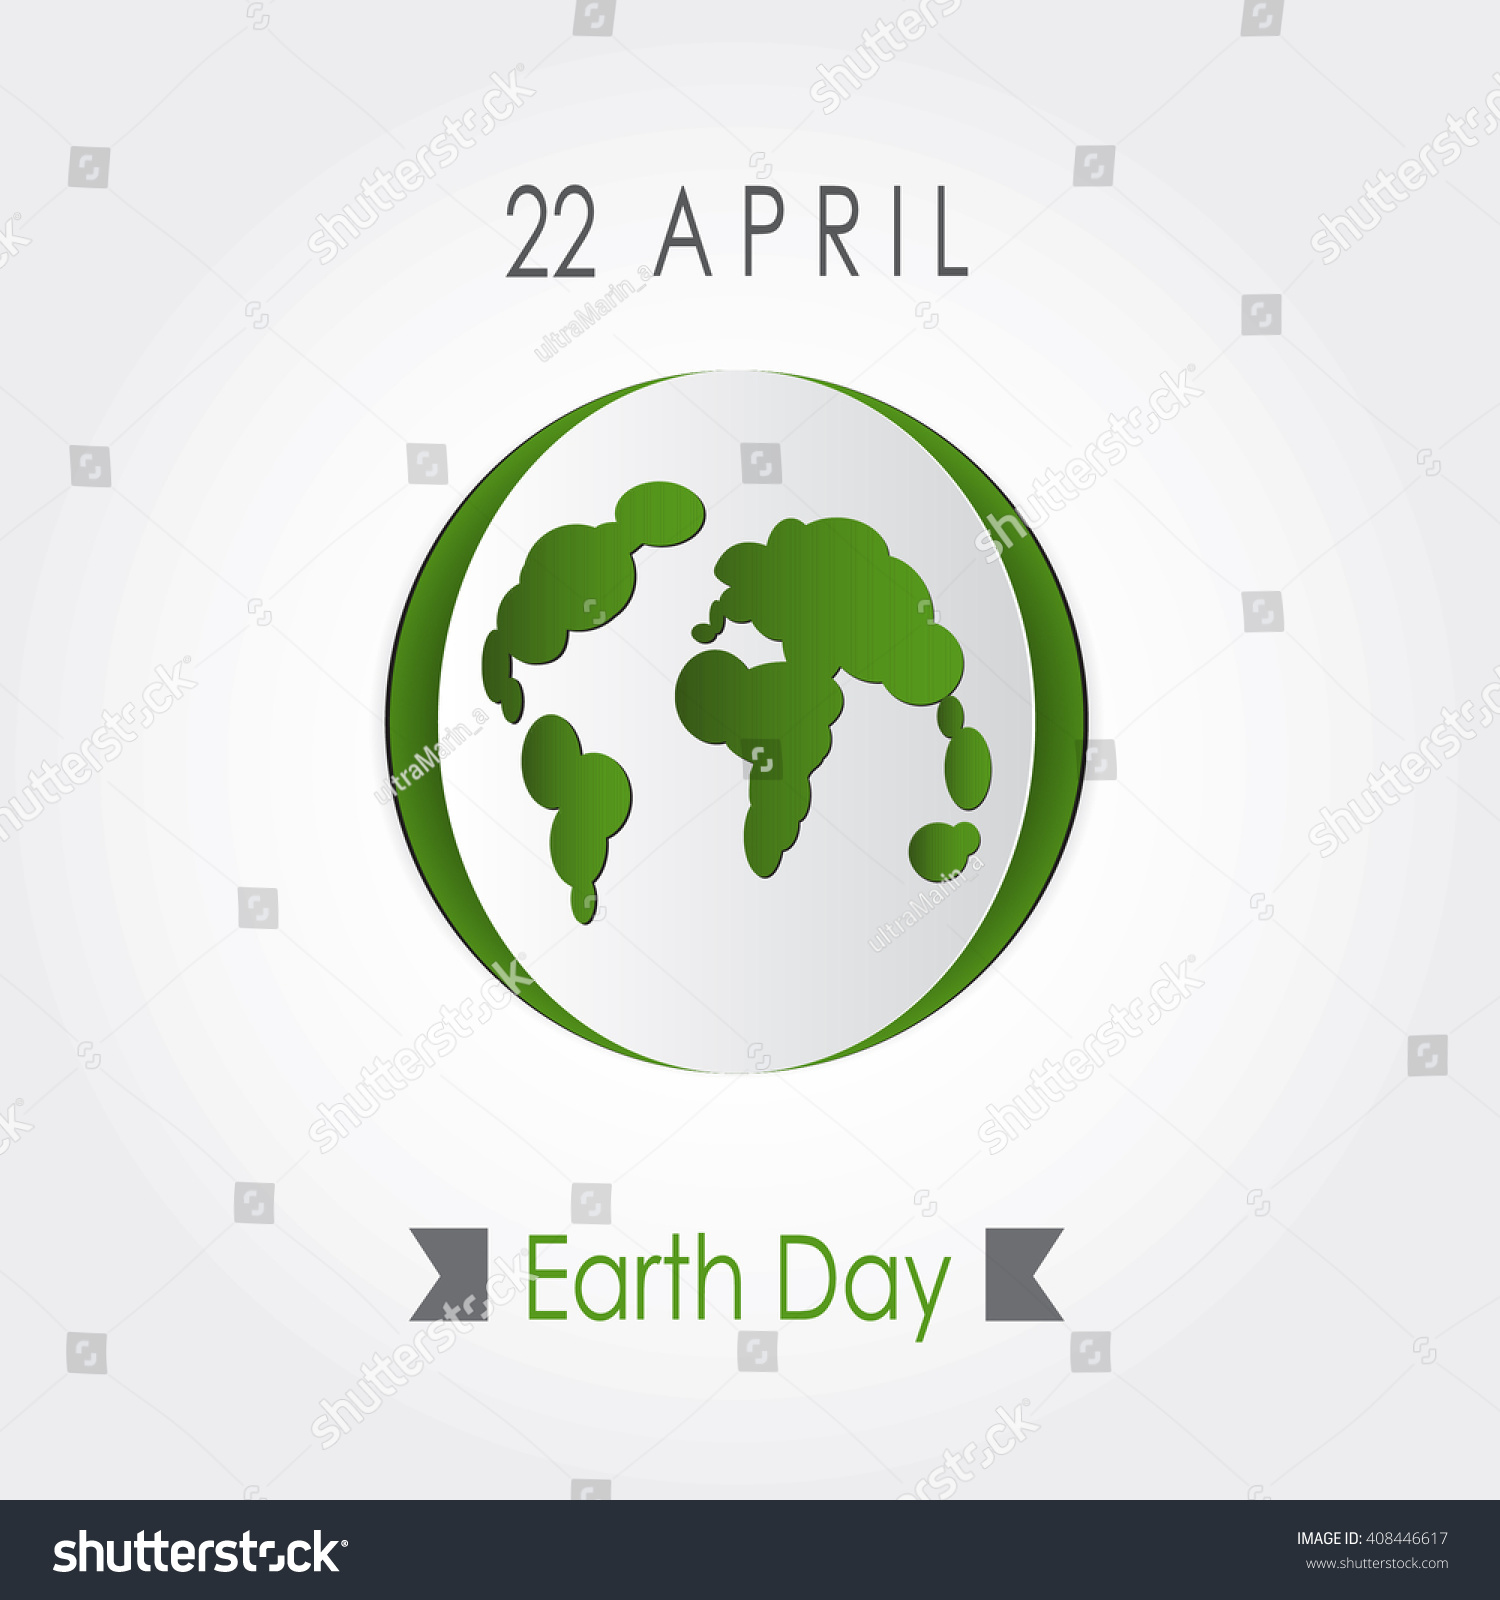 Poster design on save earth - Vector Earth Day Poster Design Save Earth Concept Map Illustration Protect World Idea